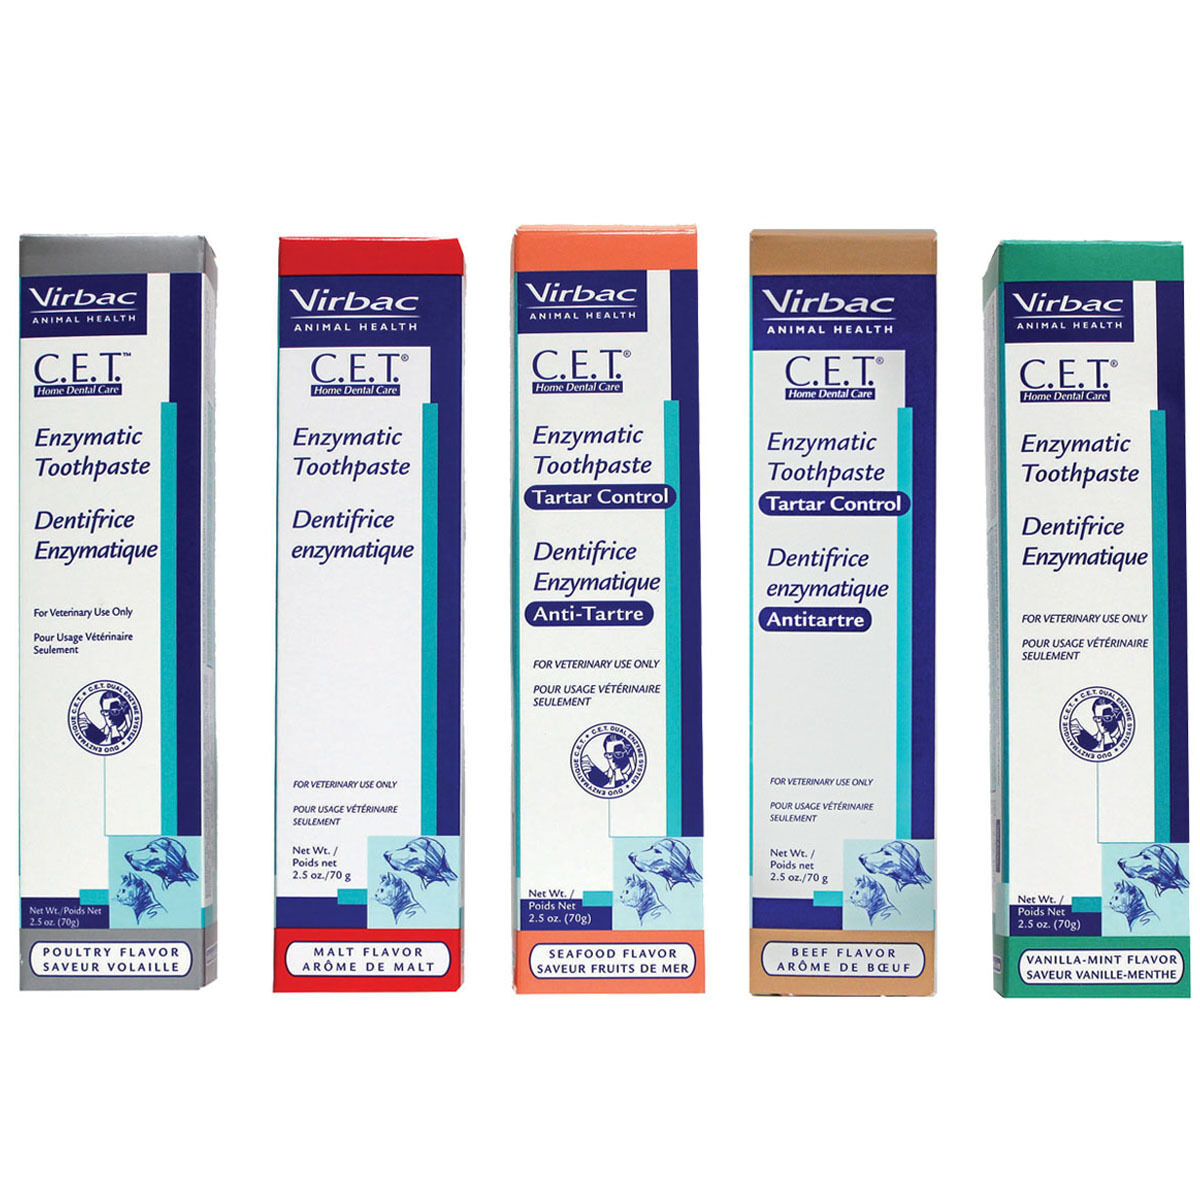 CET Enzymatic Toothpaste for Dogs & Cats Choose from 5 Flavors